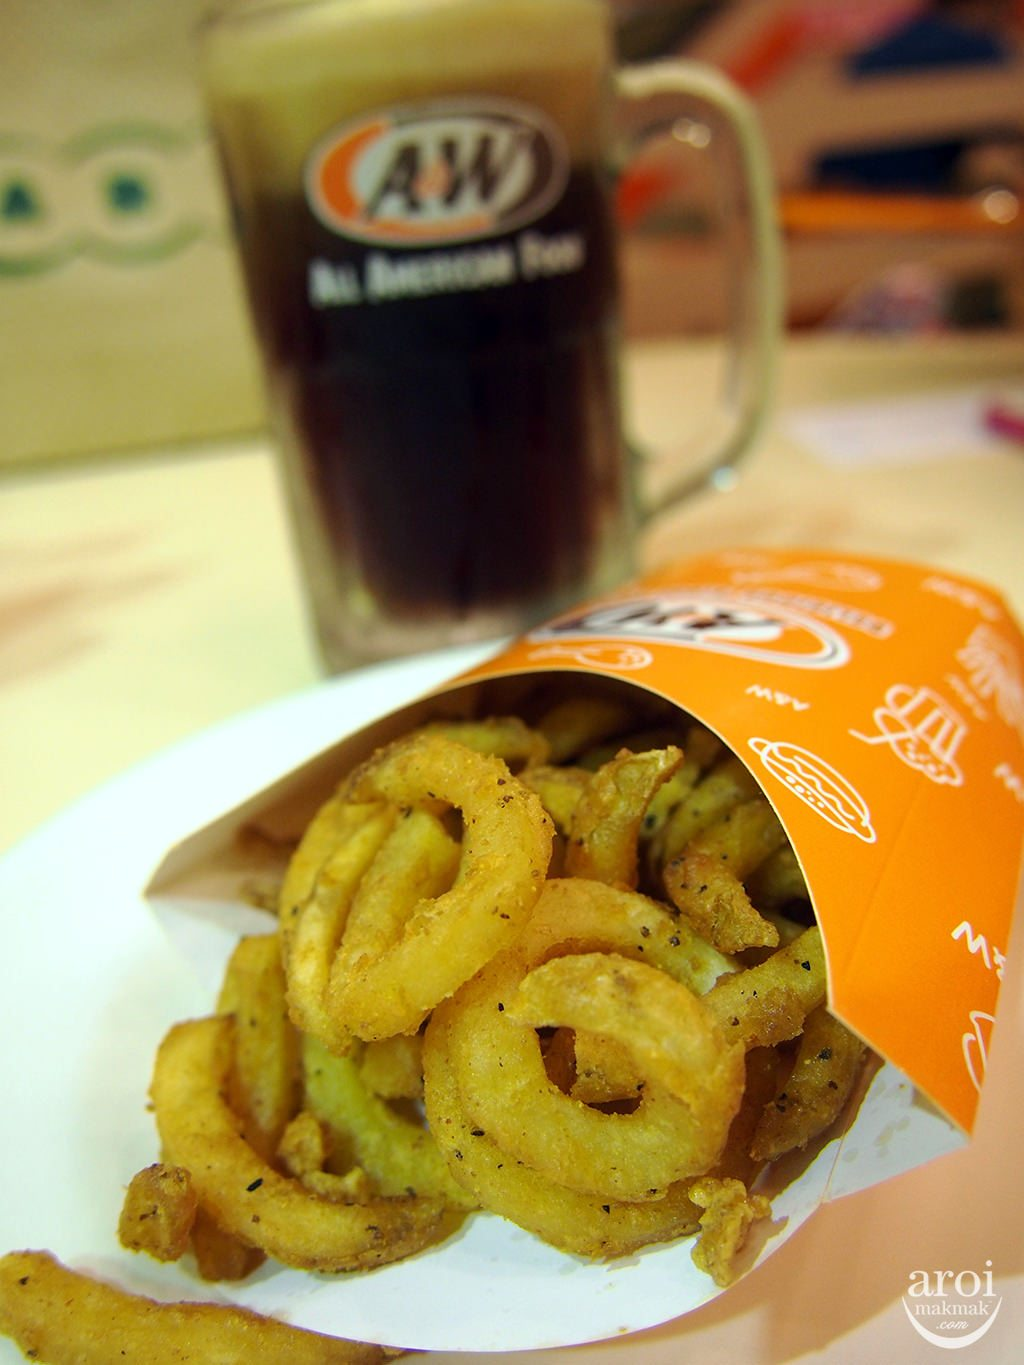 a&w-curlyfries